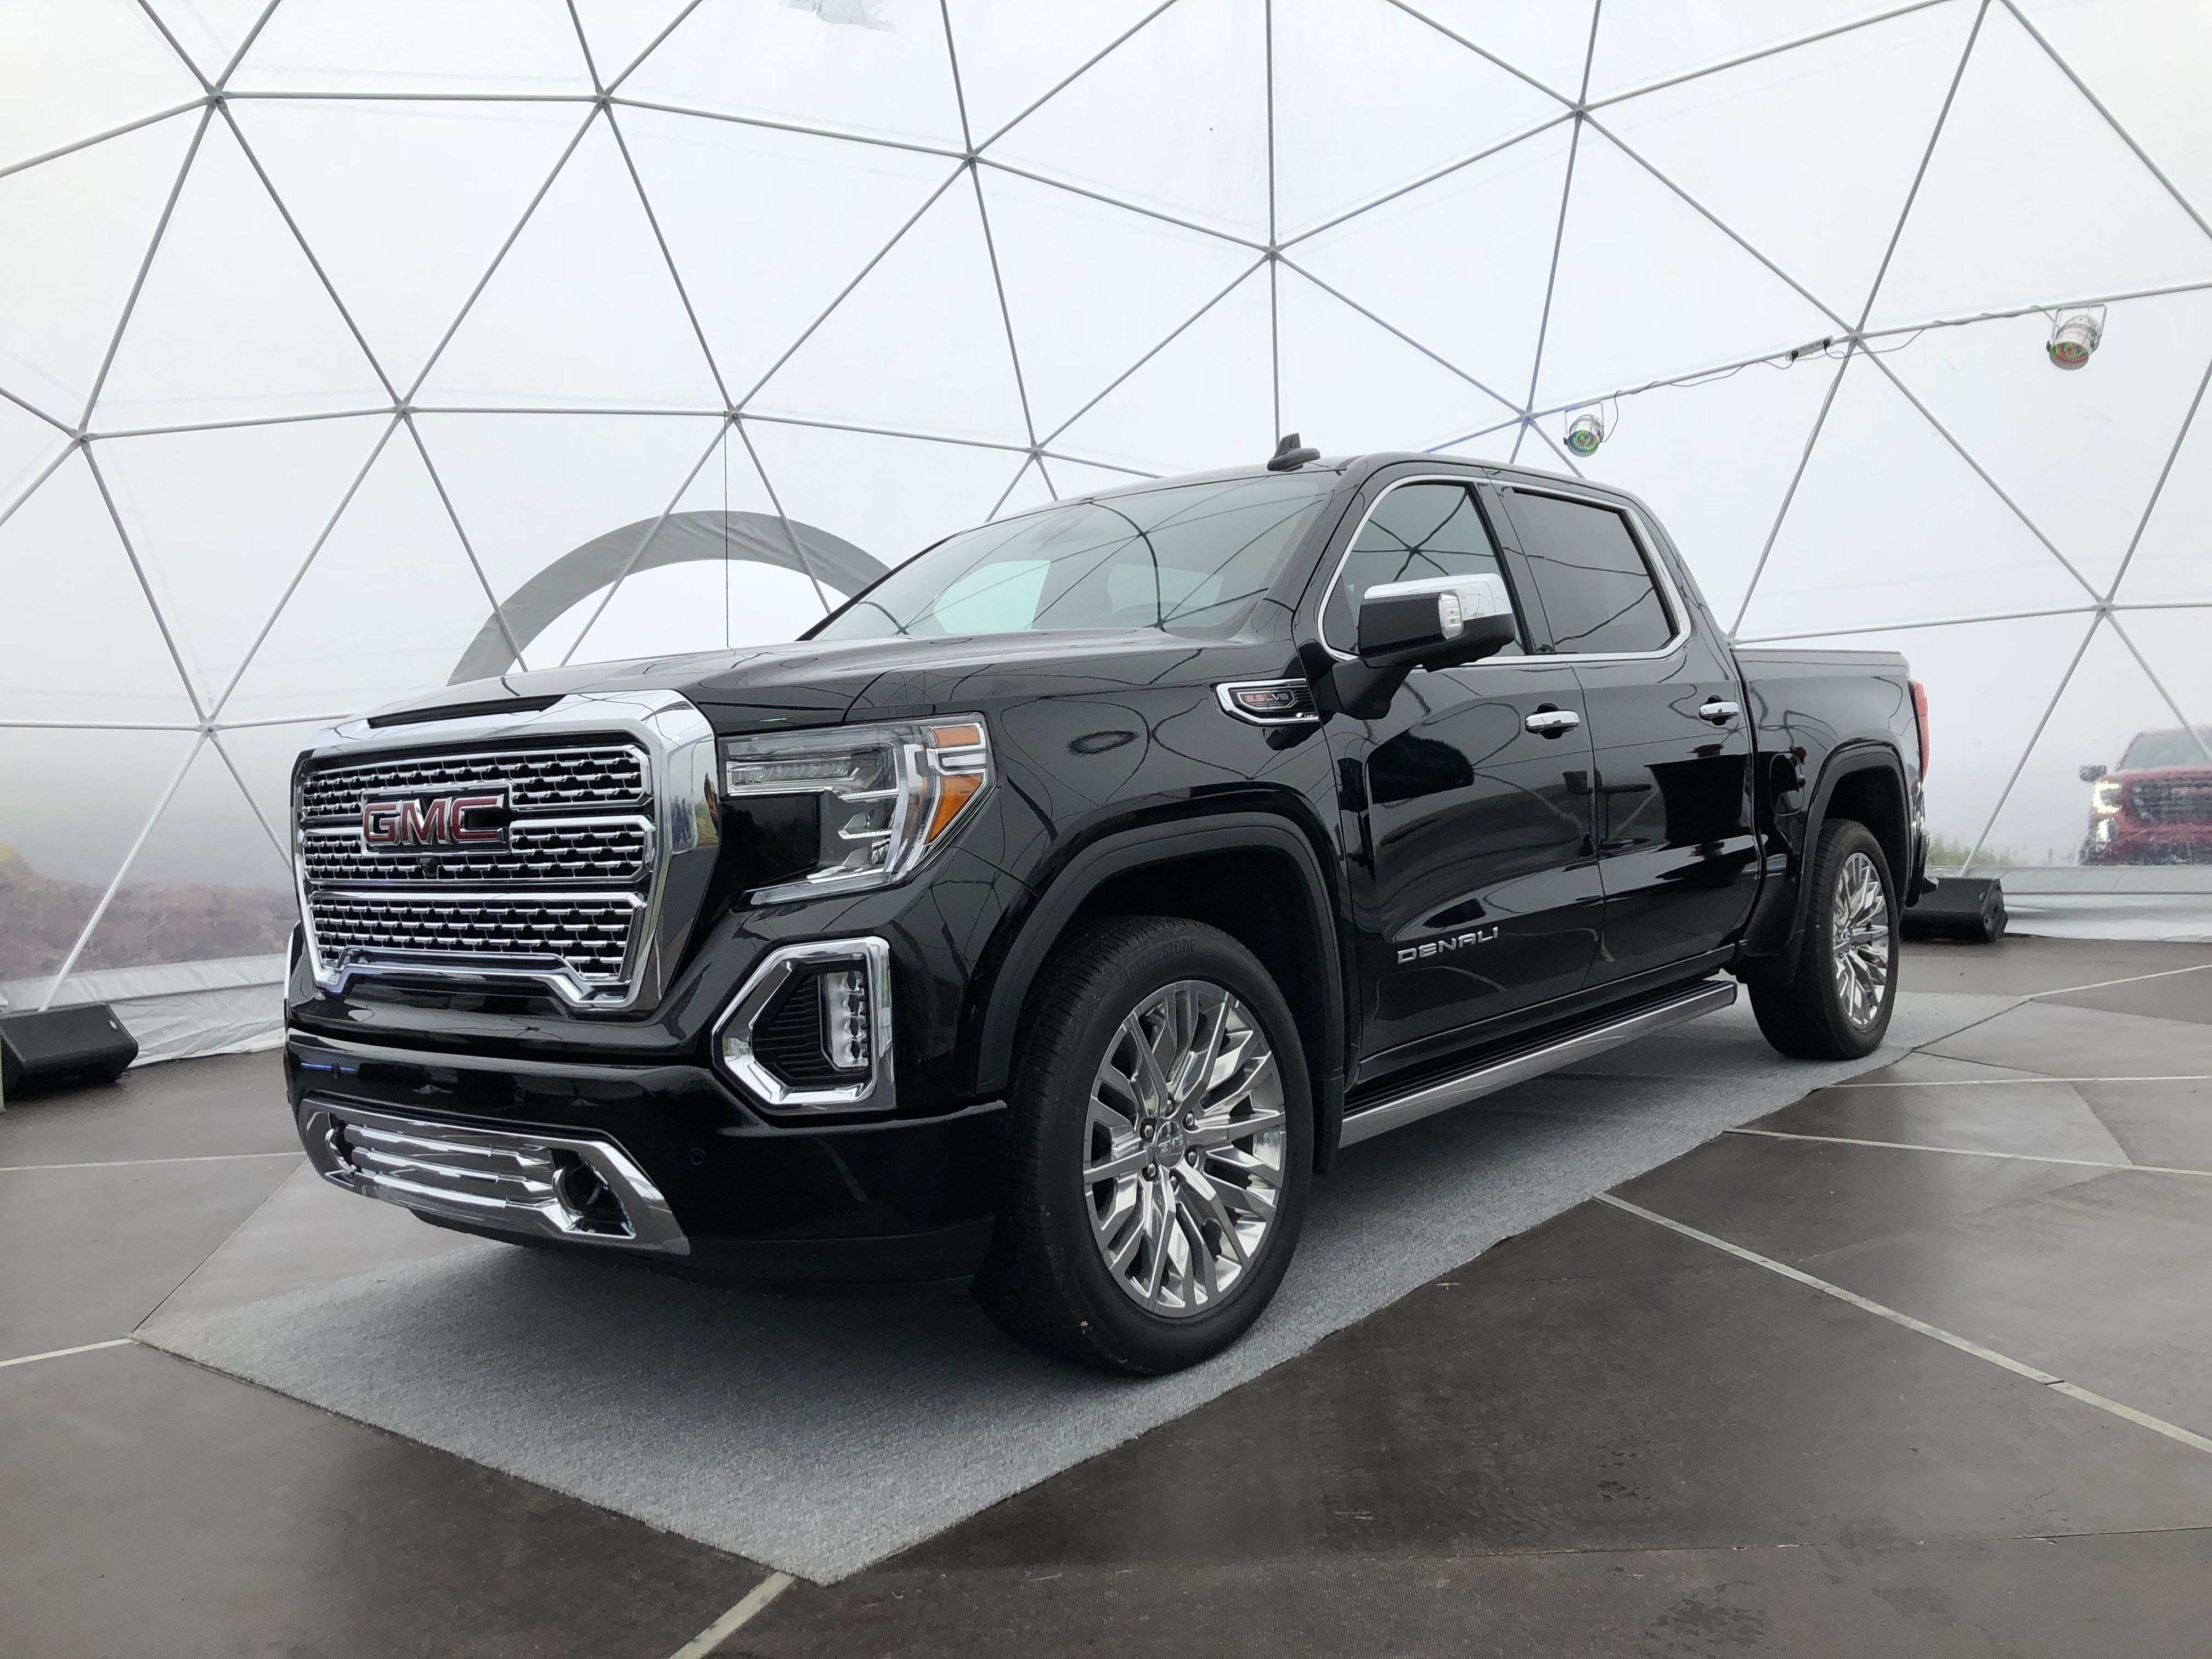 46 All New 2019 GMC Sierra 1500 Diesel Review And Release Date